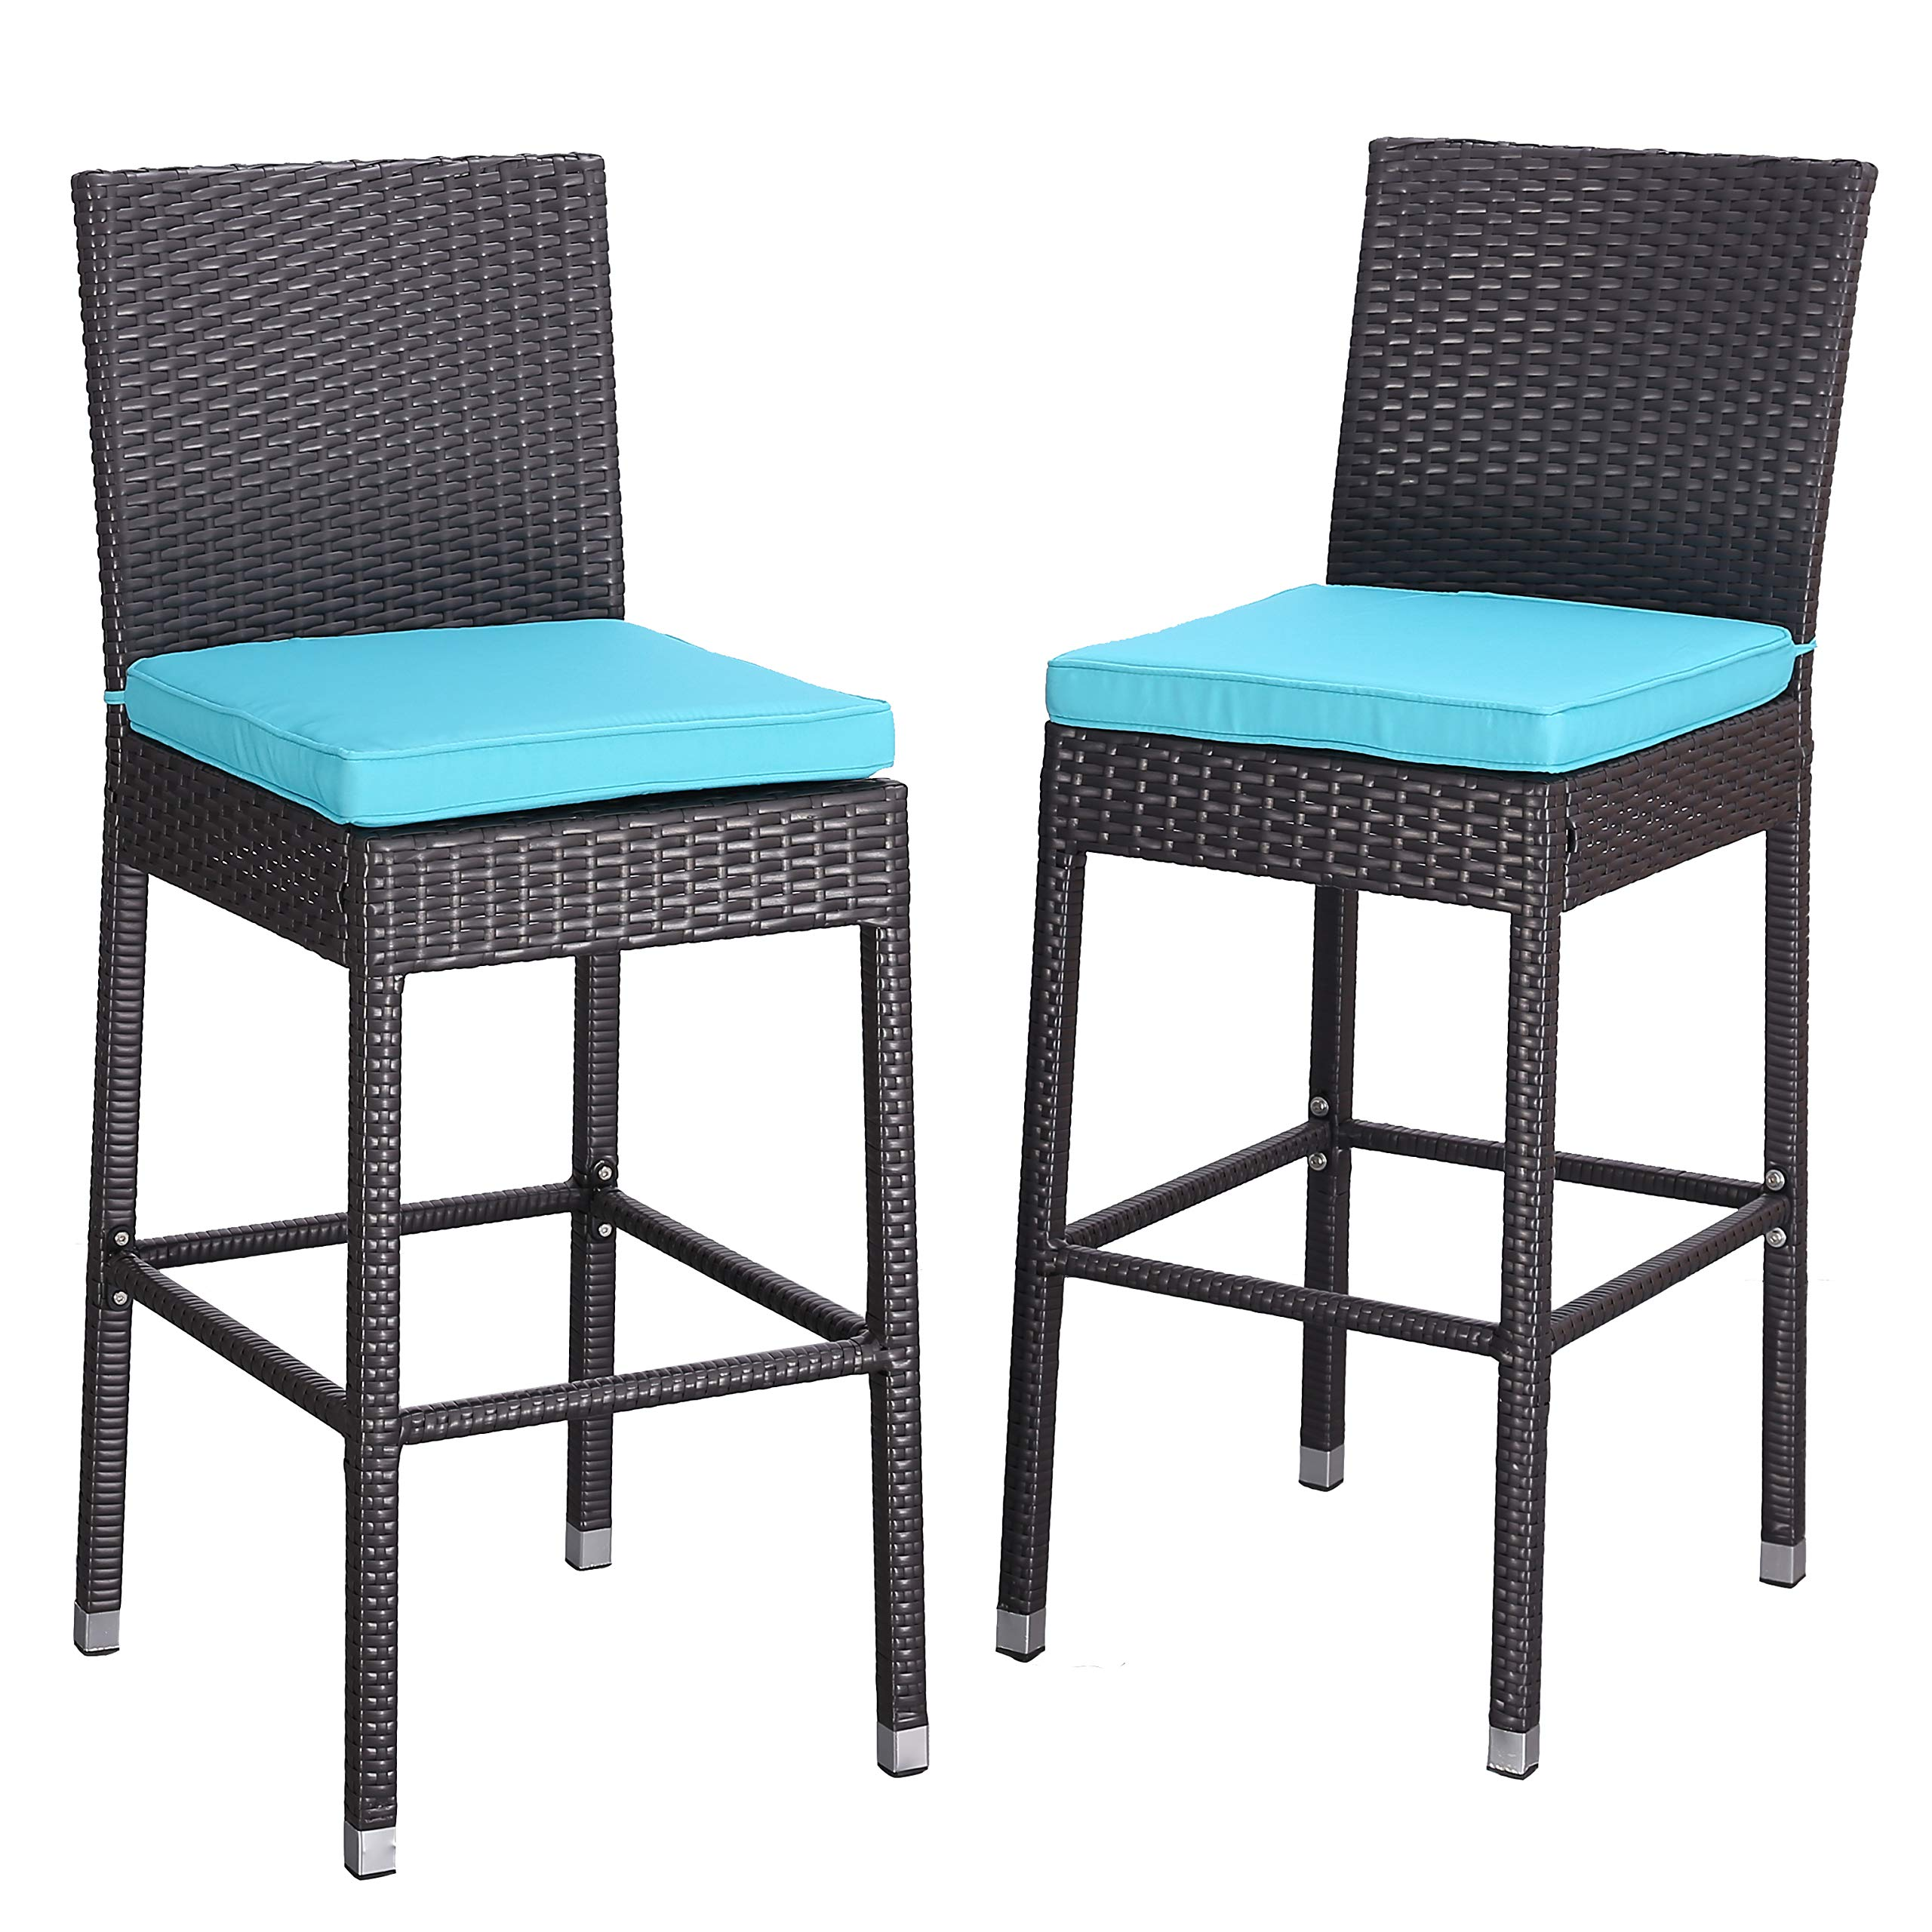 Do4U Set of 2 Patio Bar Stools All-Weather Wicker Outdoor Furniture Chair, Bar Chairs with Beige Cushions & Footrest | Garden Pool Lawn Backyard | Steel Frame| Barstools (985-EXP-TRQ) by Do4U